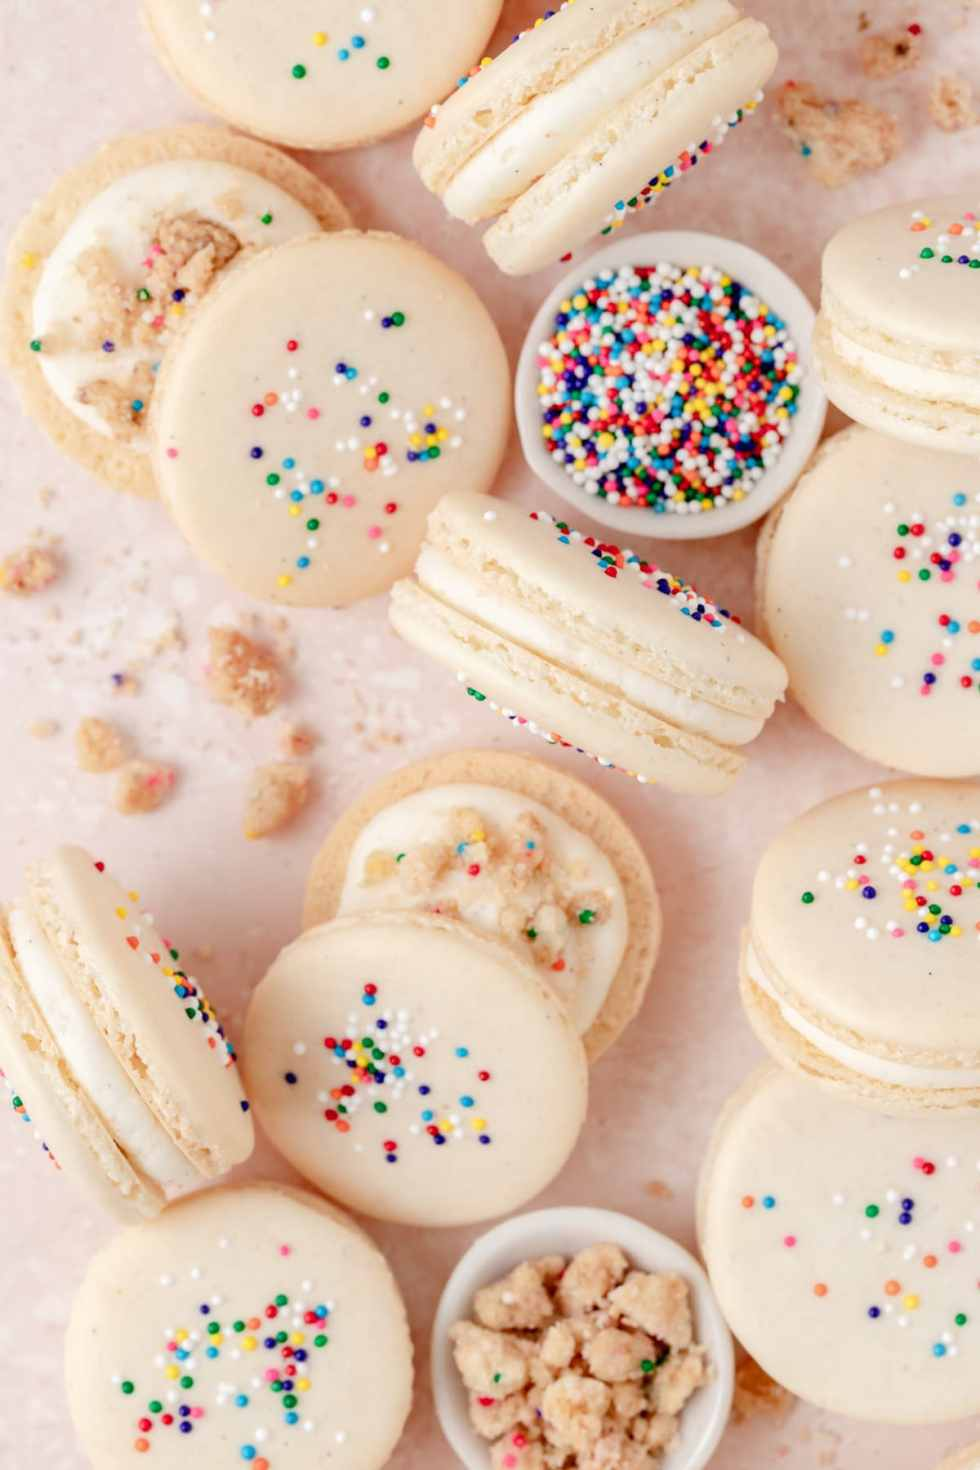 birthday cake macarons with cake crumbs and vanilla frosting